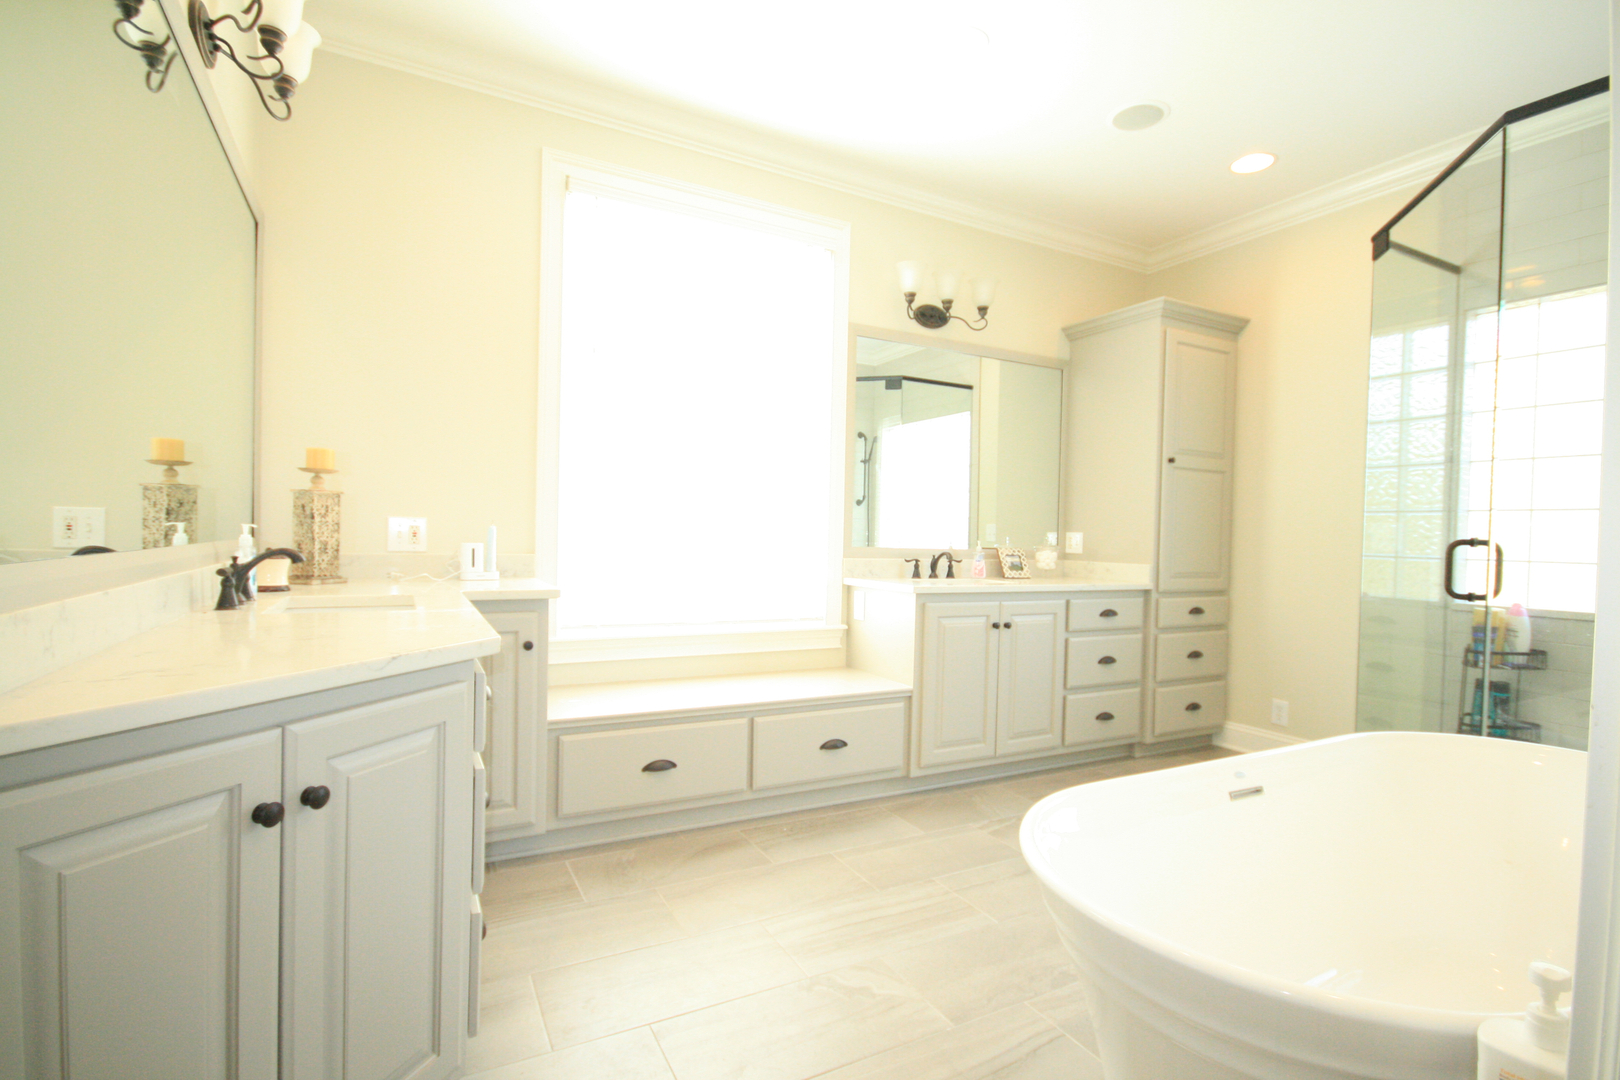 Kitchen and Bathroom Remodeling - Needco, inc. - Birmingham, Al